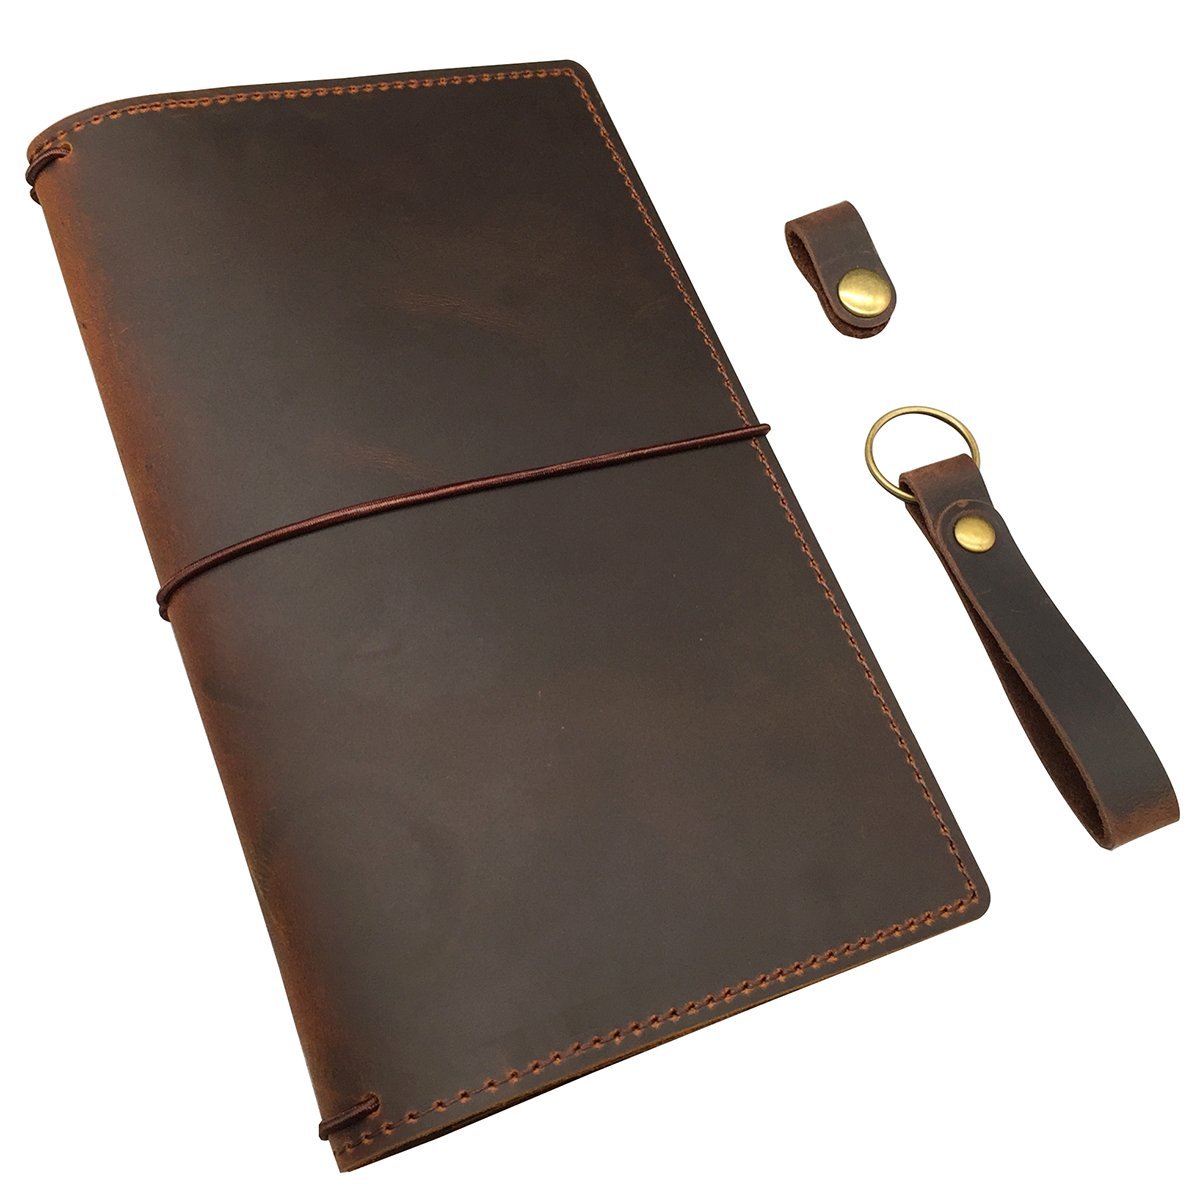 Travelers Notebook Cover with 4 Elastics, Inner Pocket + Card & Pen Holder, Distressed Brown Genuine Leather, Standard Size